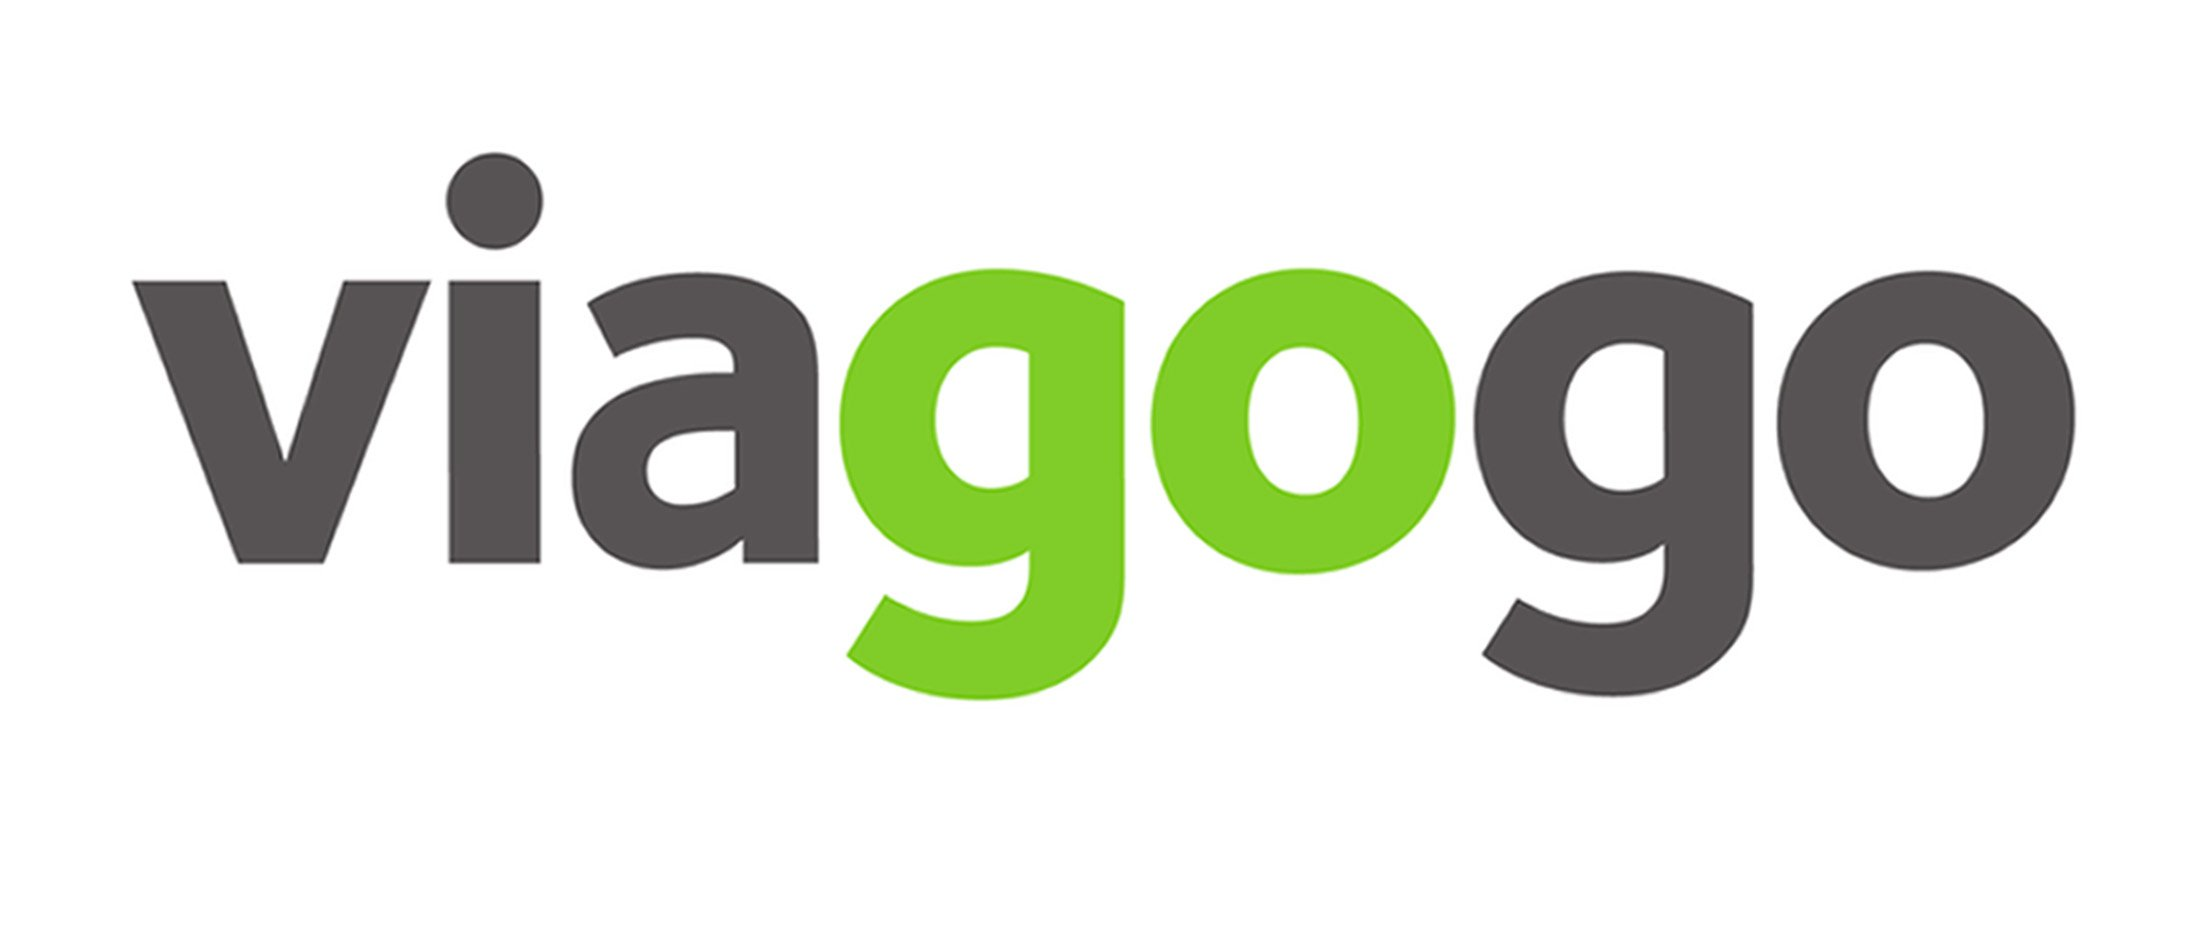 "Embargoed to 0001 Tuesday March 19 Undated handout photo of the Viagogo logo. MPs have issued a warning to the public against using the secondary ticketing website until it ""fully complies with consumer law"", a report has said. PRESS ASSOCIATION Photo. Issue date: Tuesday March 19, 2019. The caution comes from a report into live music, published by the Digital, Culture, Media and Sport (DCMS) Committee, in which its chairman Damian Collins said the ""highly unusual step"" in advising consumers to avoid the platform is imperative until it fully complies with consumer law. See PA story SHOWBIZ Music. Photo credit should read: Viagogo/PA Wire NOTE TO EDITORS: This handout photo may only be used in for editorial reporting purposes for the contemporaneous illustration of events, things or the people in the image or facts mentioned in the caption. Reuse of the picture may require further permission from the copyright holder."